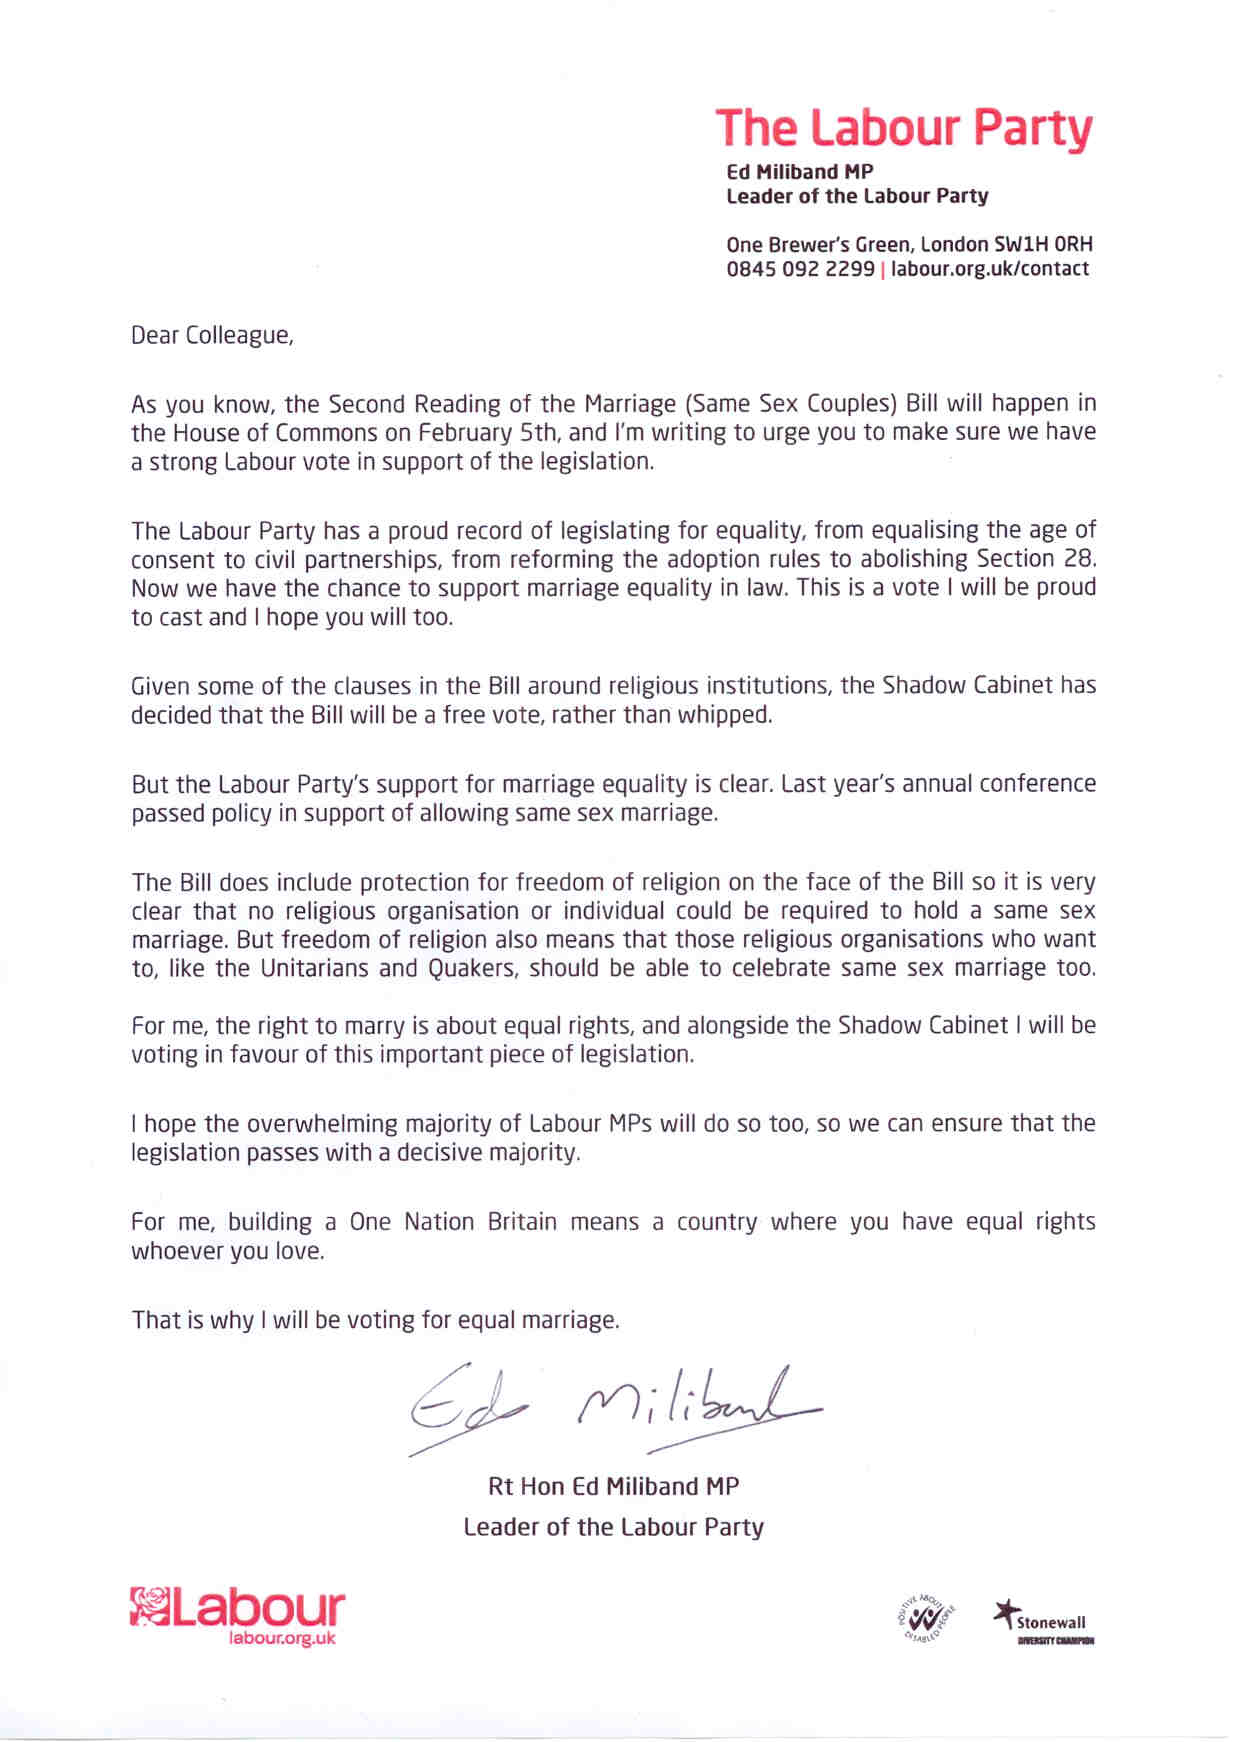 Application letter for leave marriage literacy coach cover letter sex marriage letter chi onwurah mp ed miliband same sex marriage letter ed miliband same sex marriage letter application letter for leave marriage spiritdancerdesigns Image collections